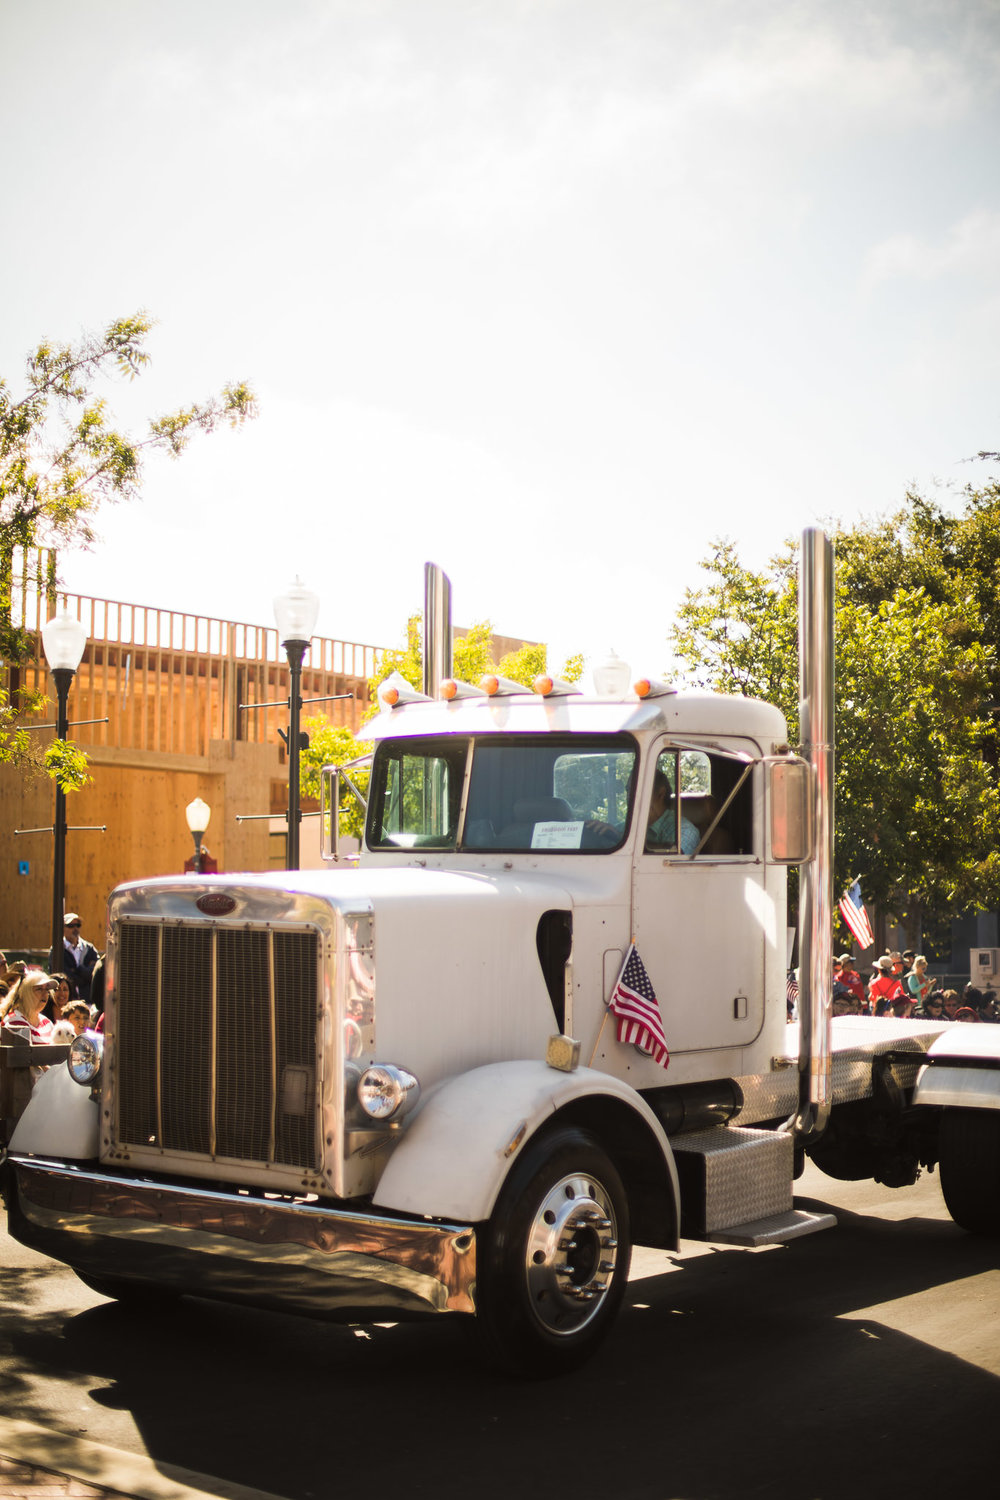 Archer_Inspired_Photography_Morgan_Hill_California_4th_of_july_parade-23.jpg